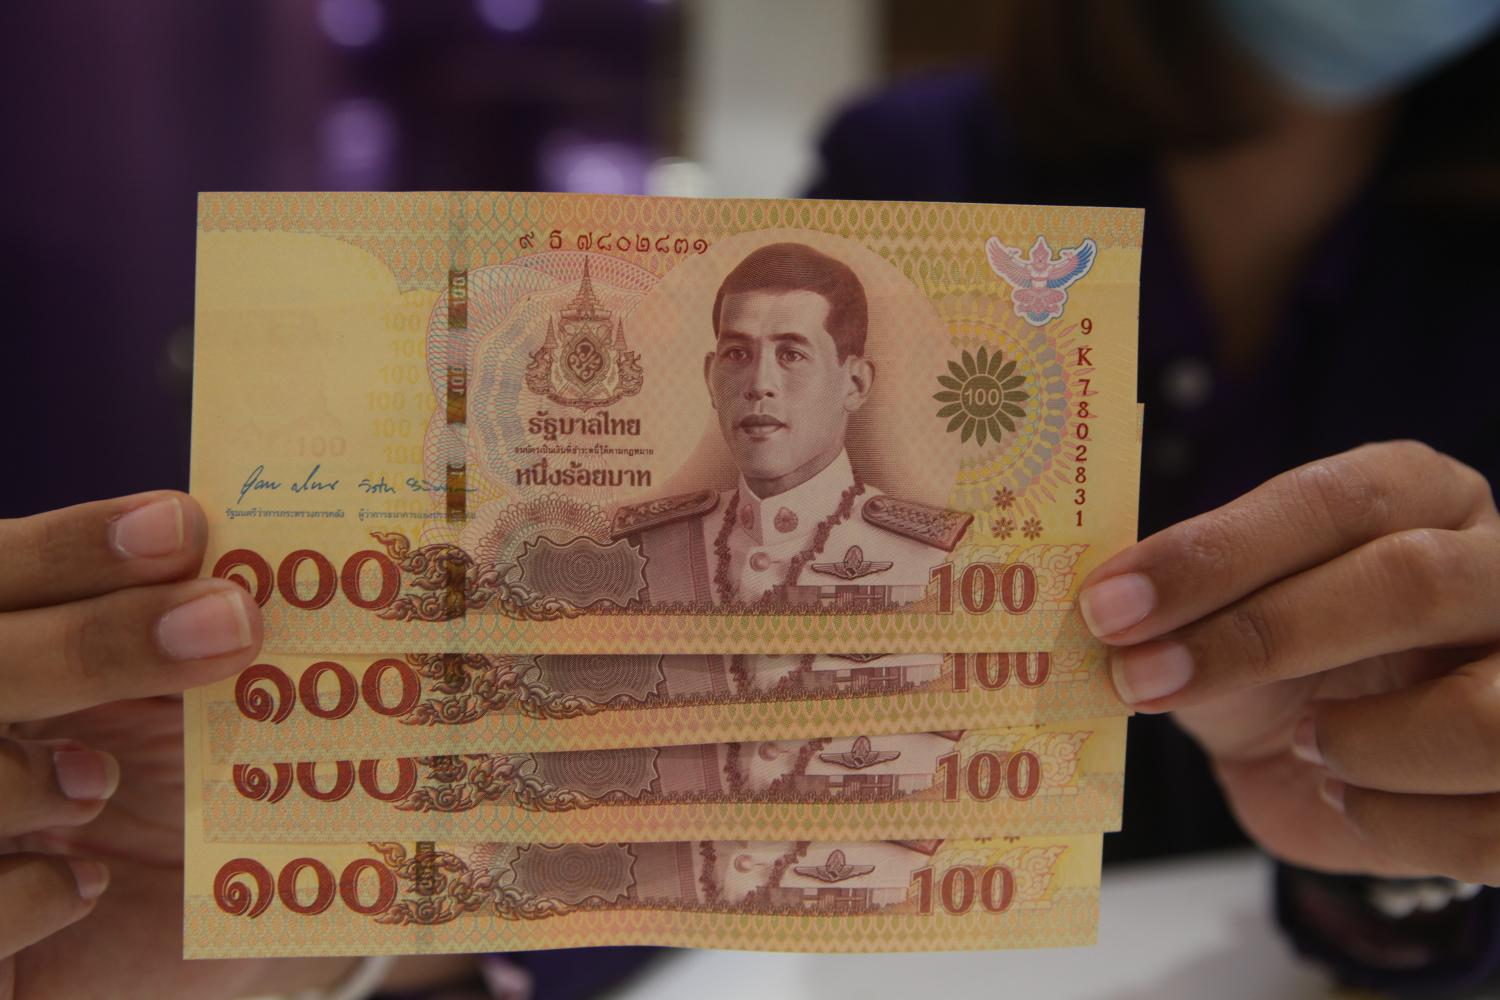 THE COLOUR OF MONEY: Commemorative banknotes marking the Royal Coronation Ceremony of 2019 make their debut on Saturday. The set comprises 1,000-baht and 100-baht notes.